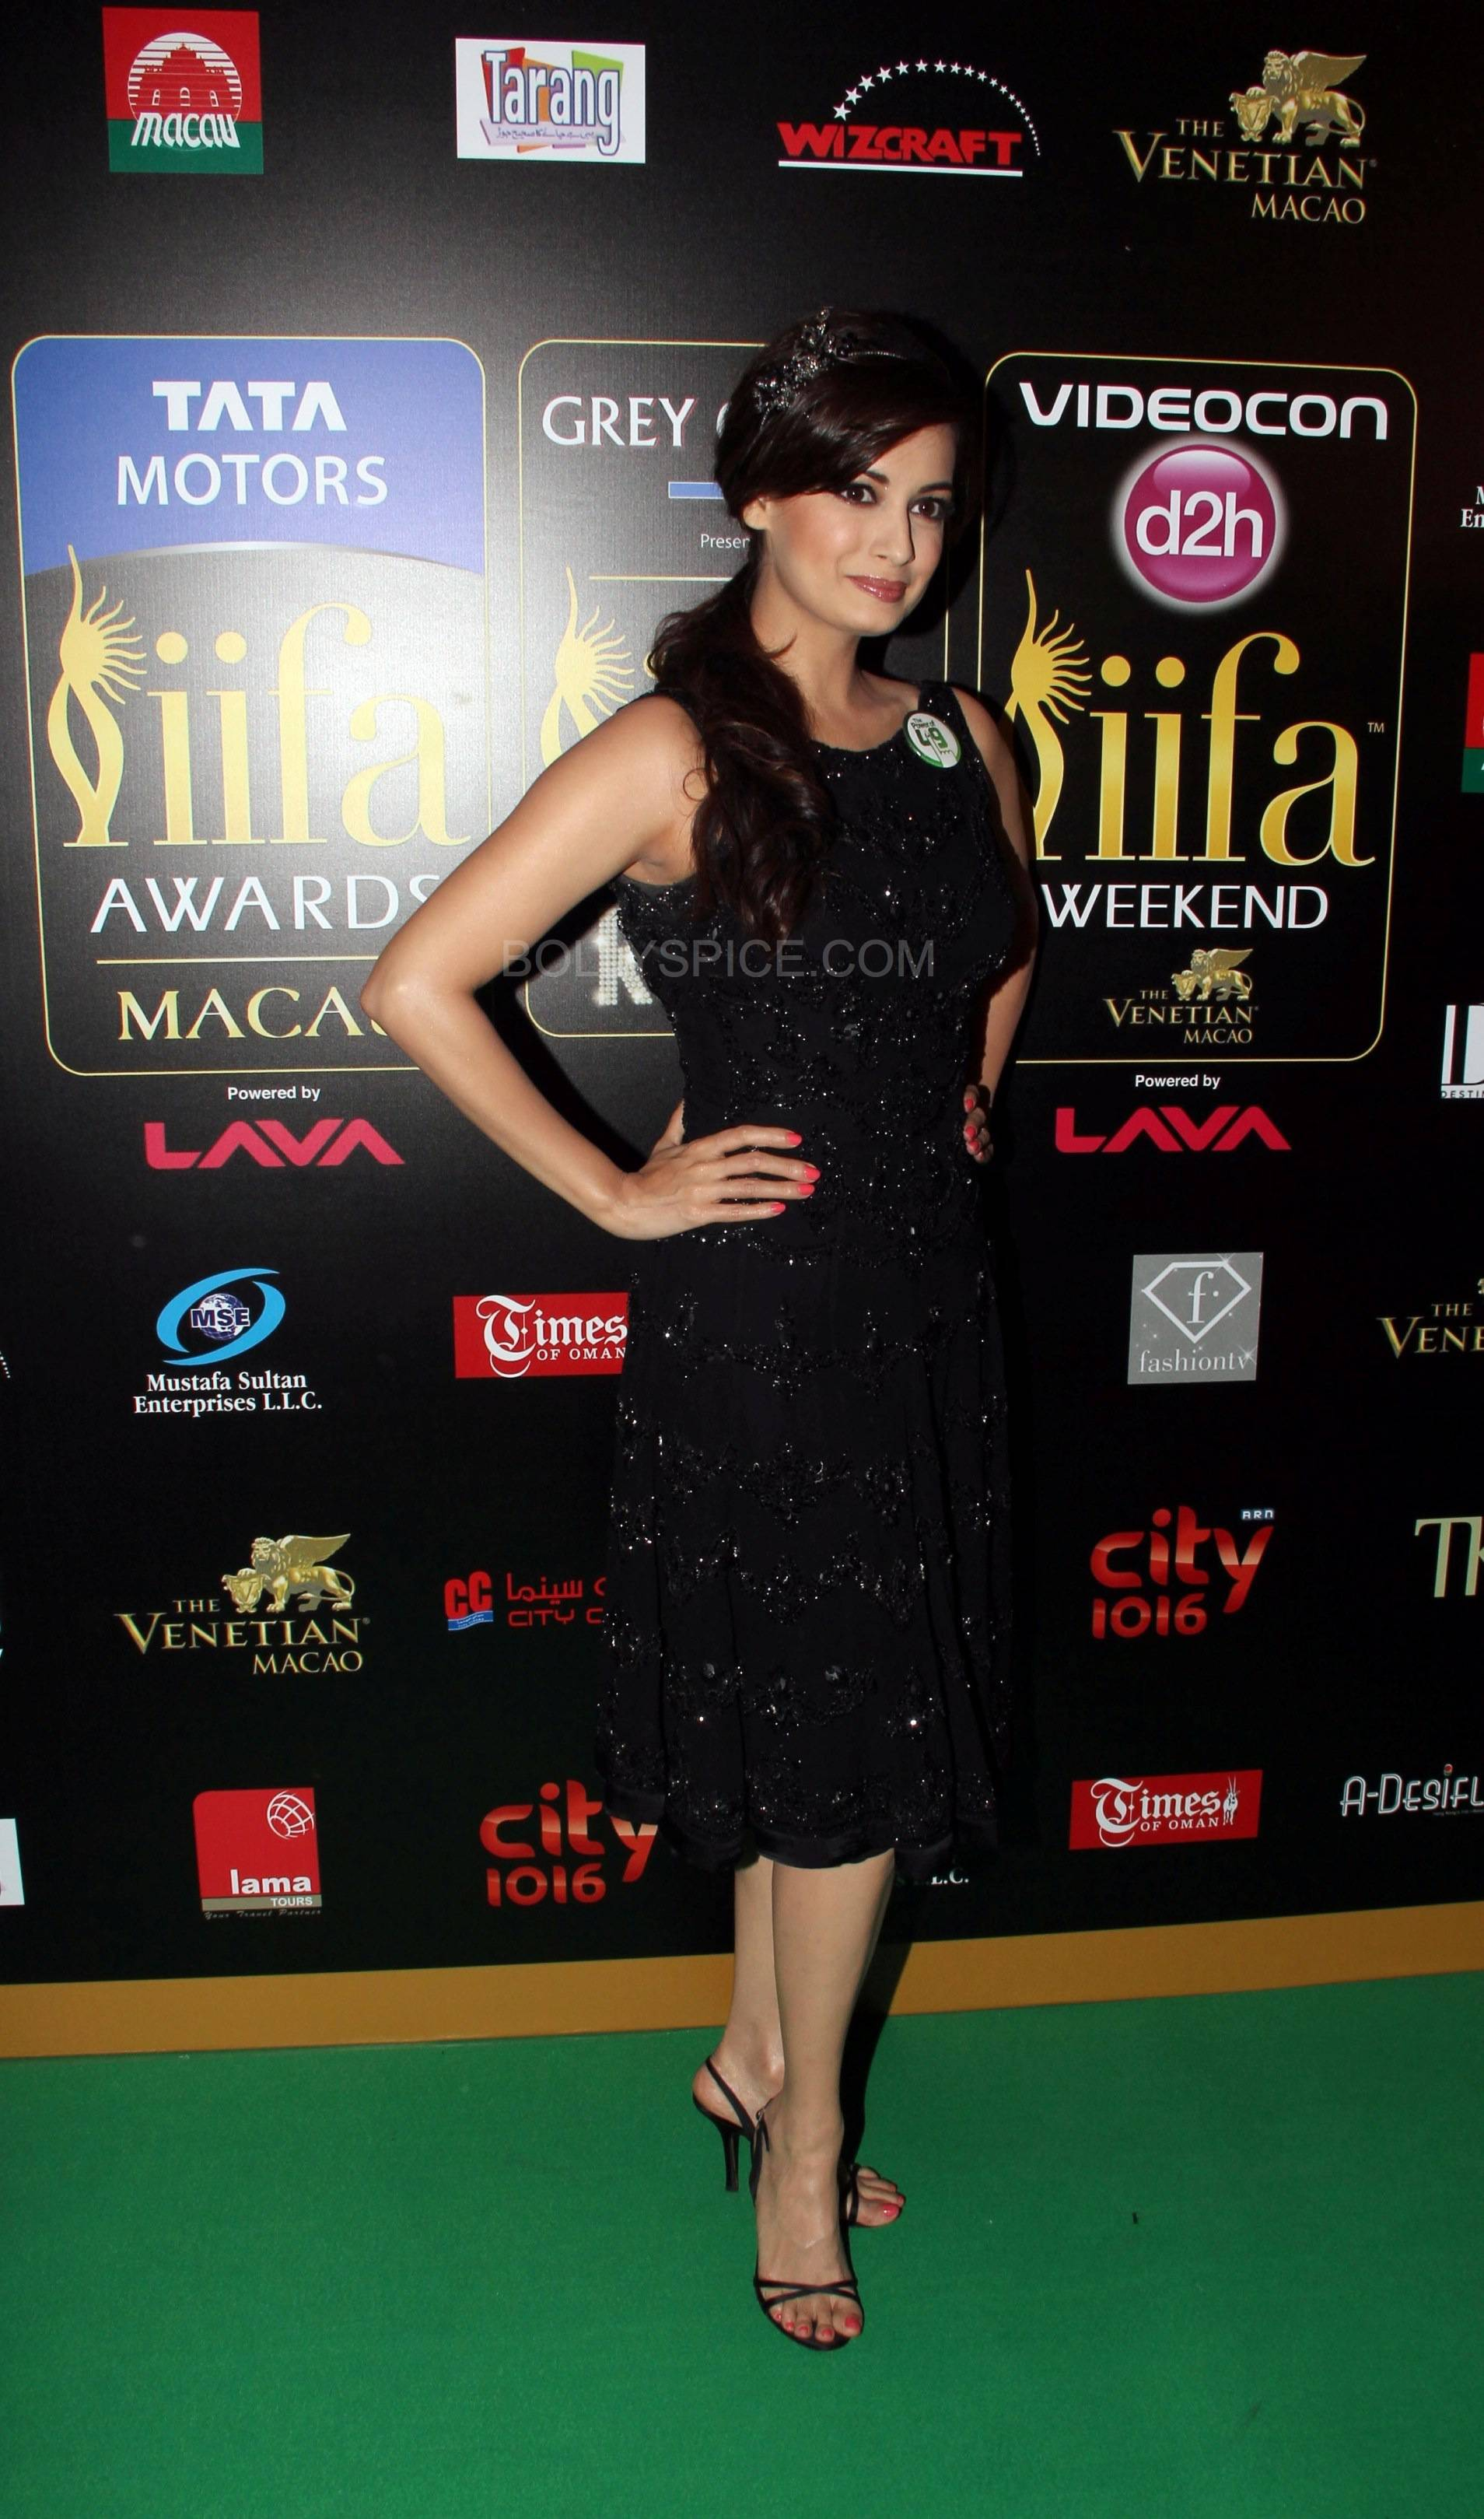 Dia Mirza at IIFA Rocks Green carpet More from IIFA Rocks including winners and more Green Carpet pics! Pics added!